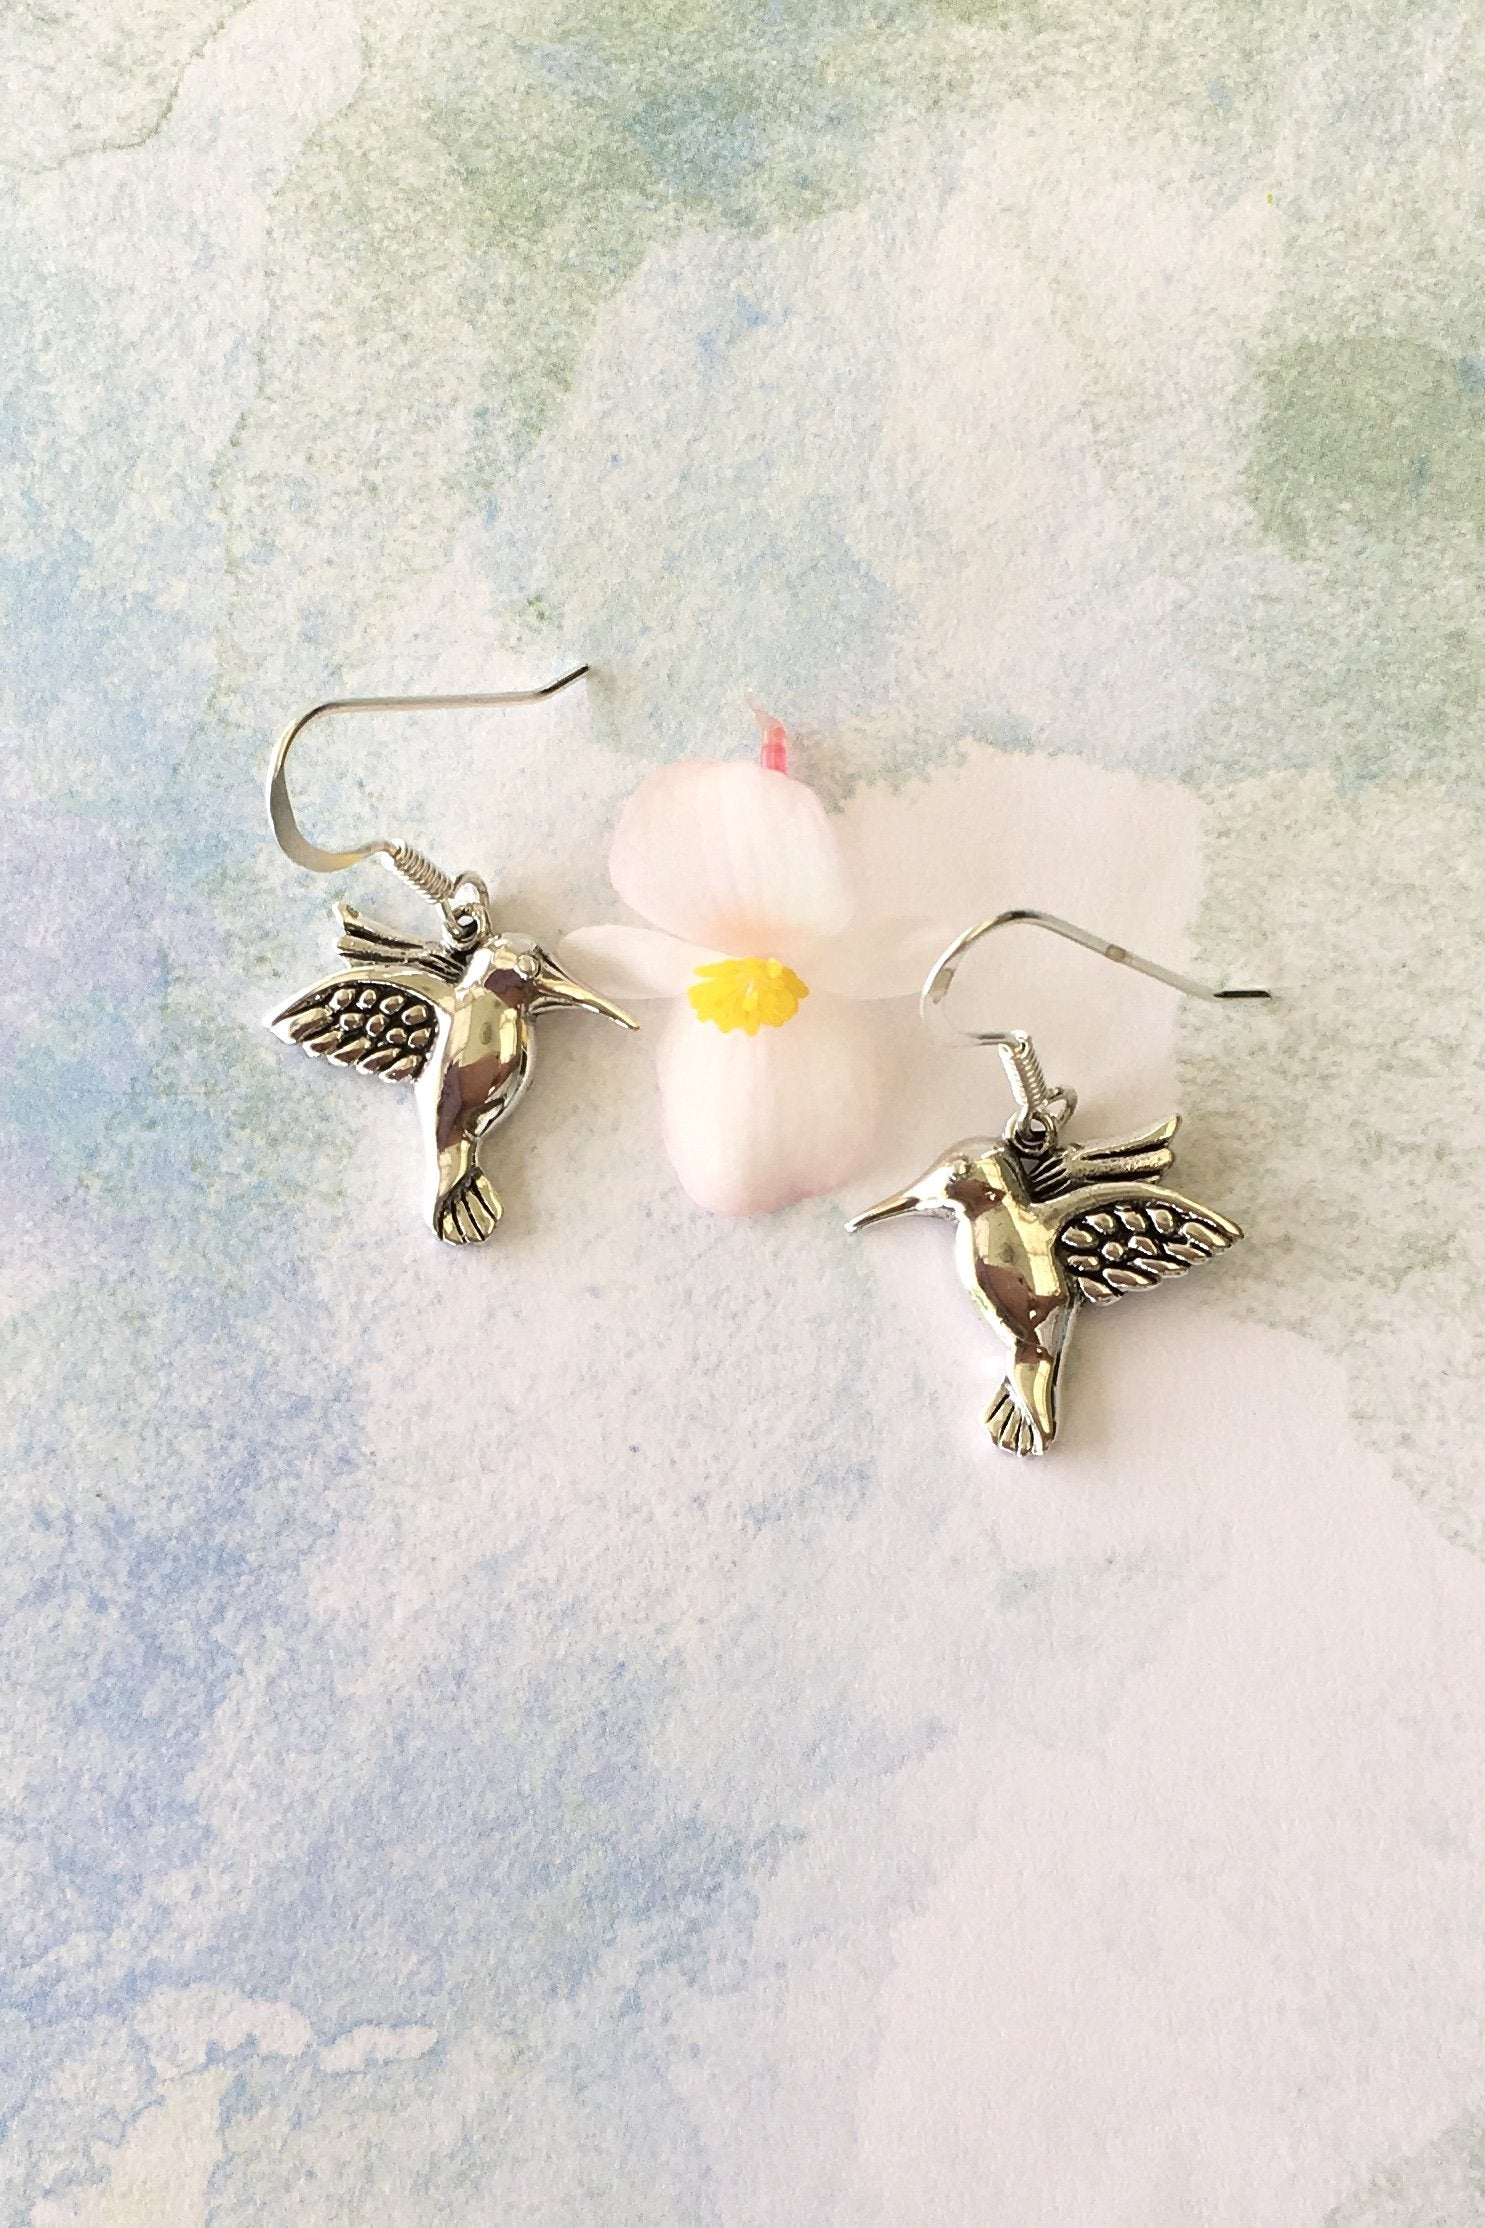 fine solid 925 silver pair of earrings featuring a beautiful little bird